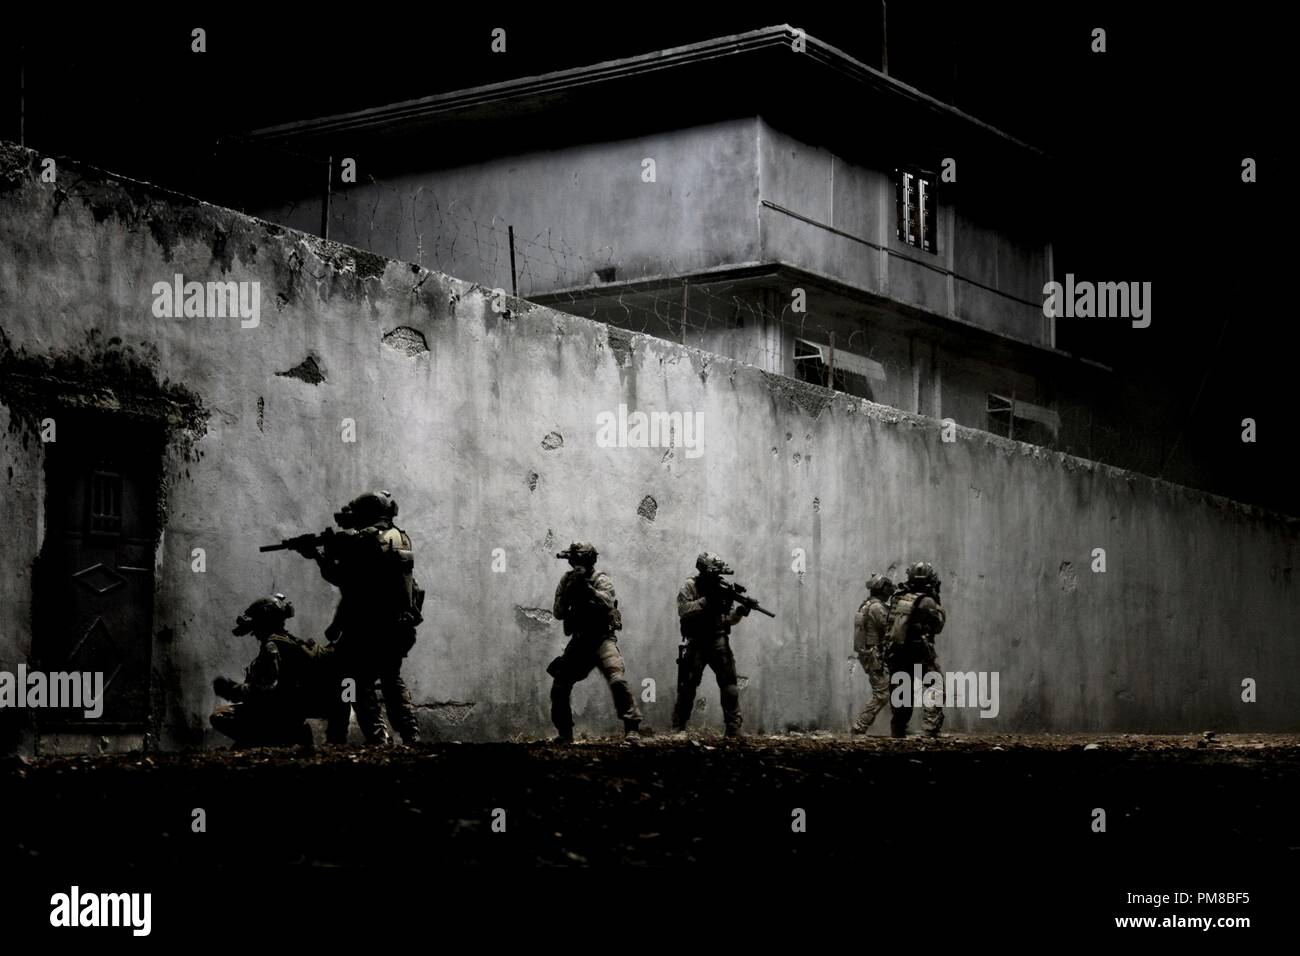 In the darkest hour of the night, elite Navy SEALs raid Osama Bin Laden's compound in Columbia Pictures'  ultra realistic new thriller about the greatest manhunt in history, ZERO DARK THIRTY. - Stock Image